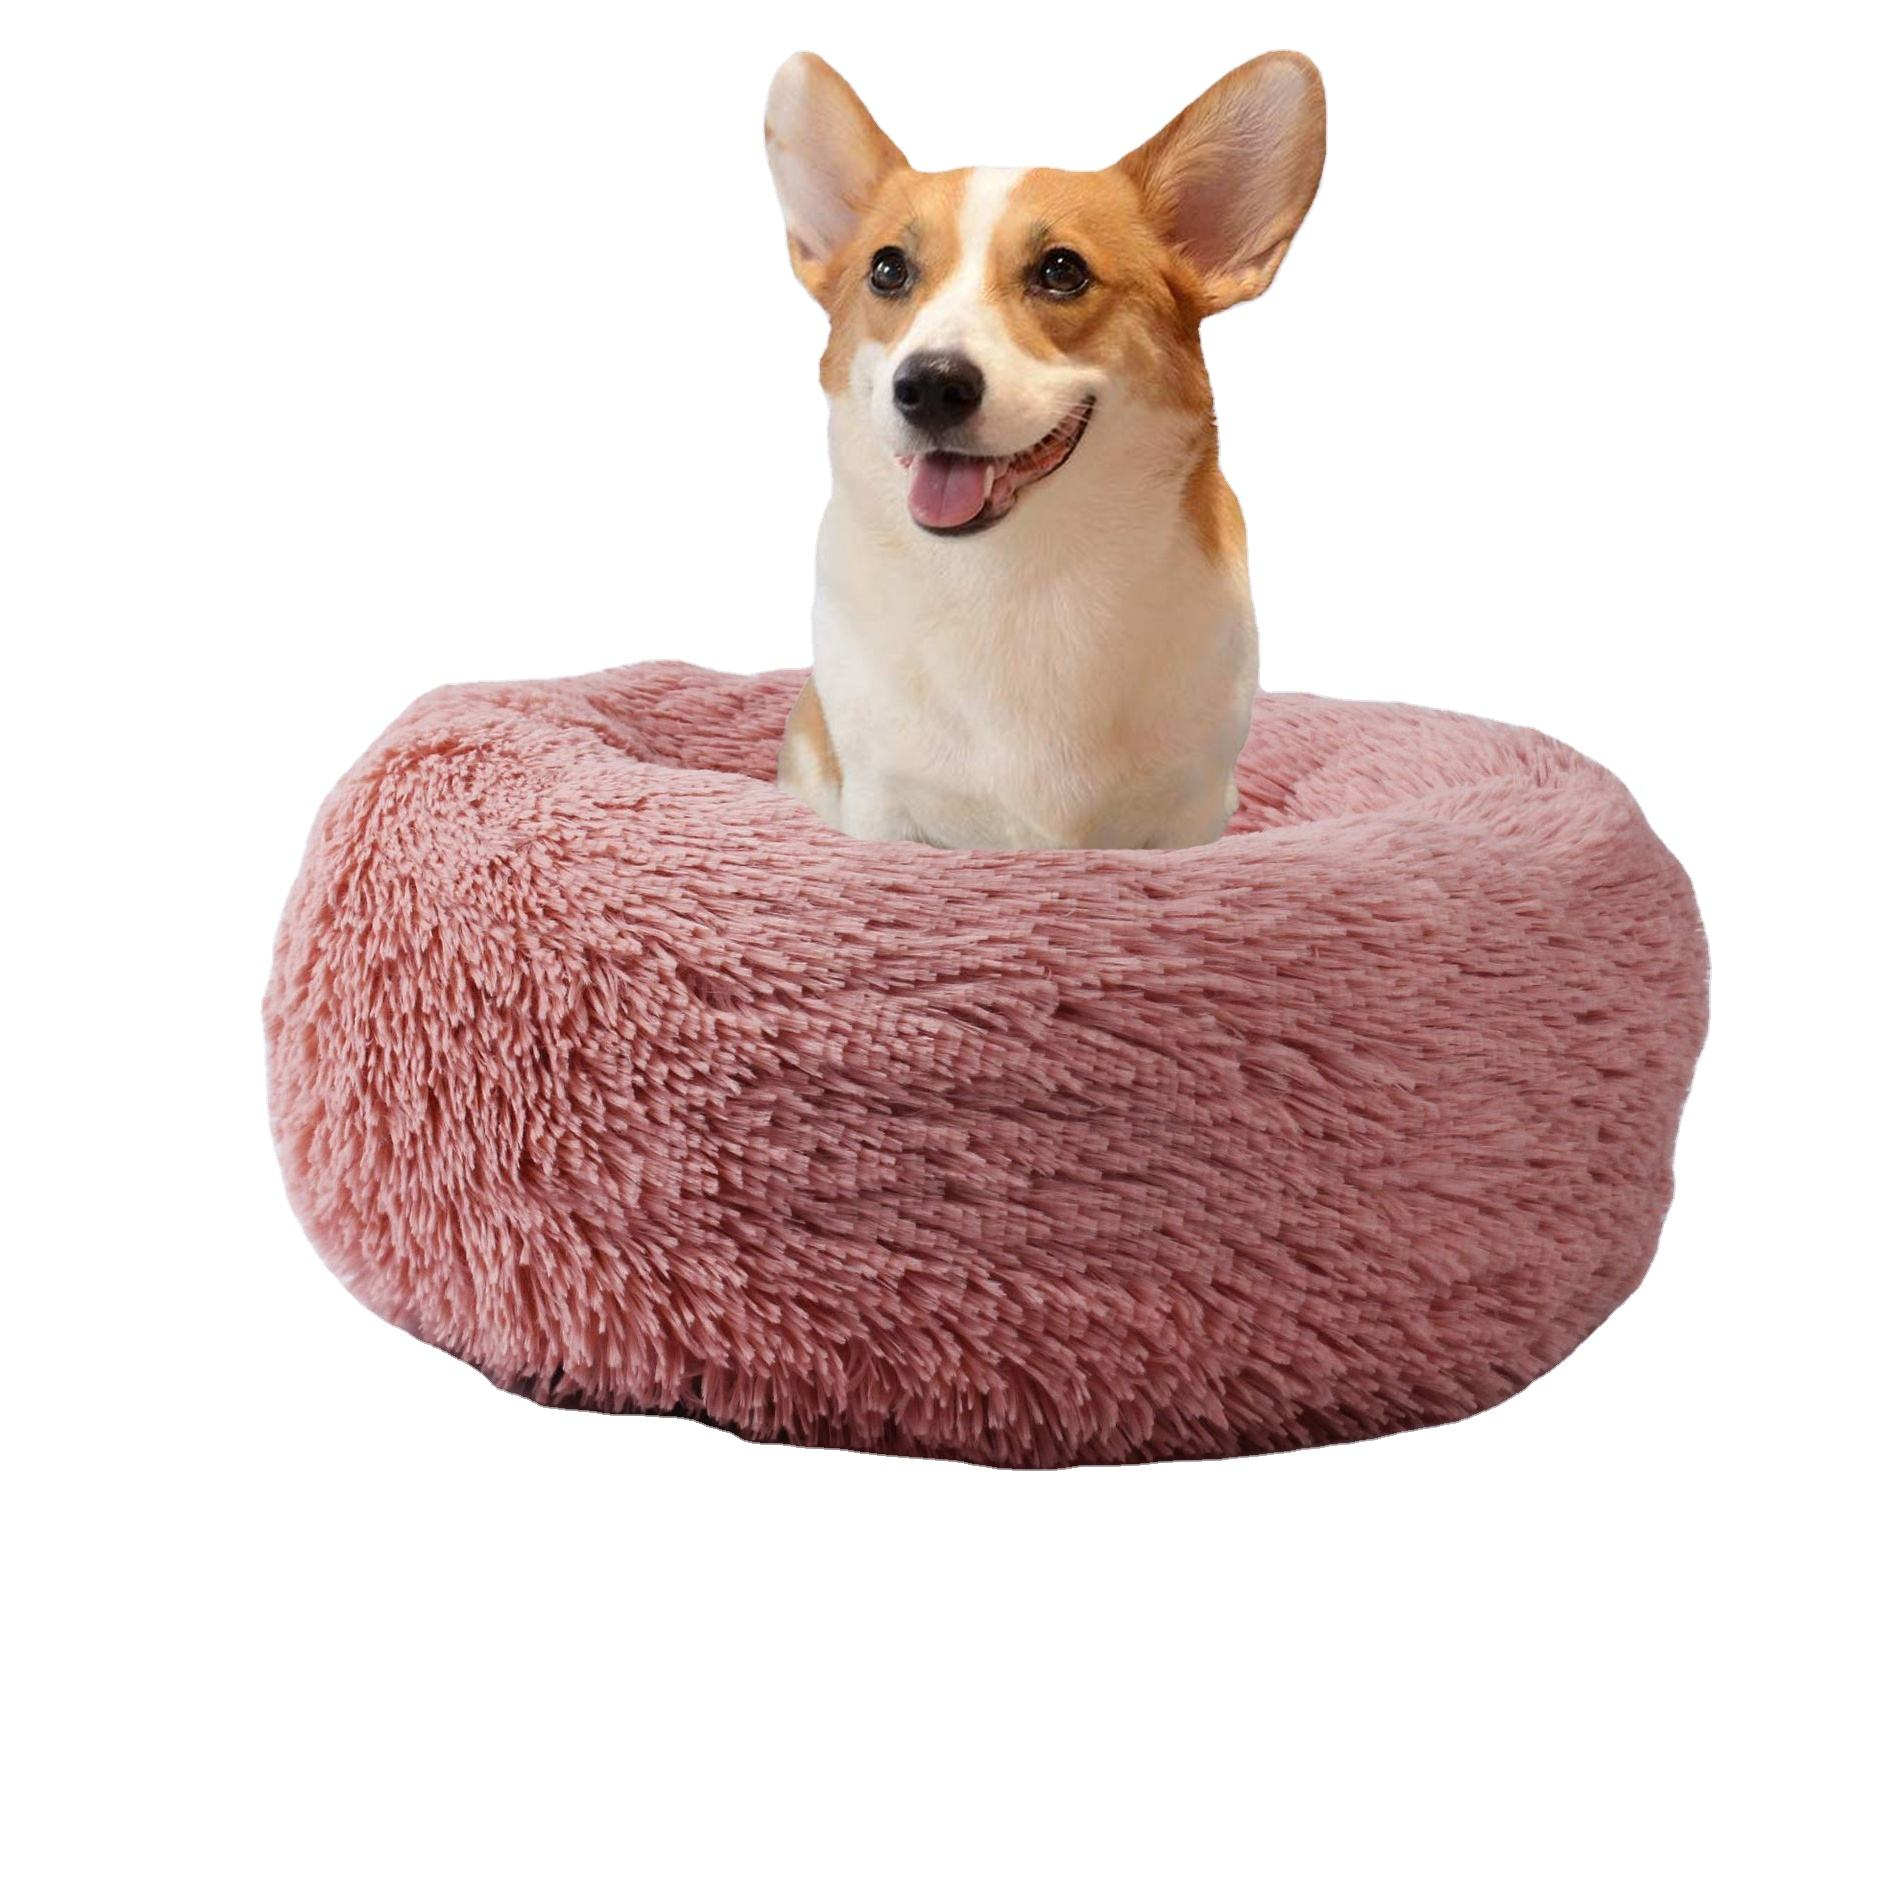 YangyangPet 2021 Comfortable Donut Cuddler Round Dog Bed Soft Washable Dropshipping Cat and Dog Bed